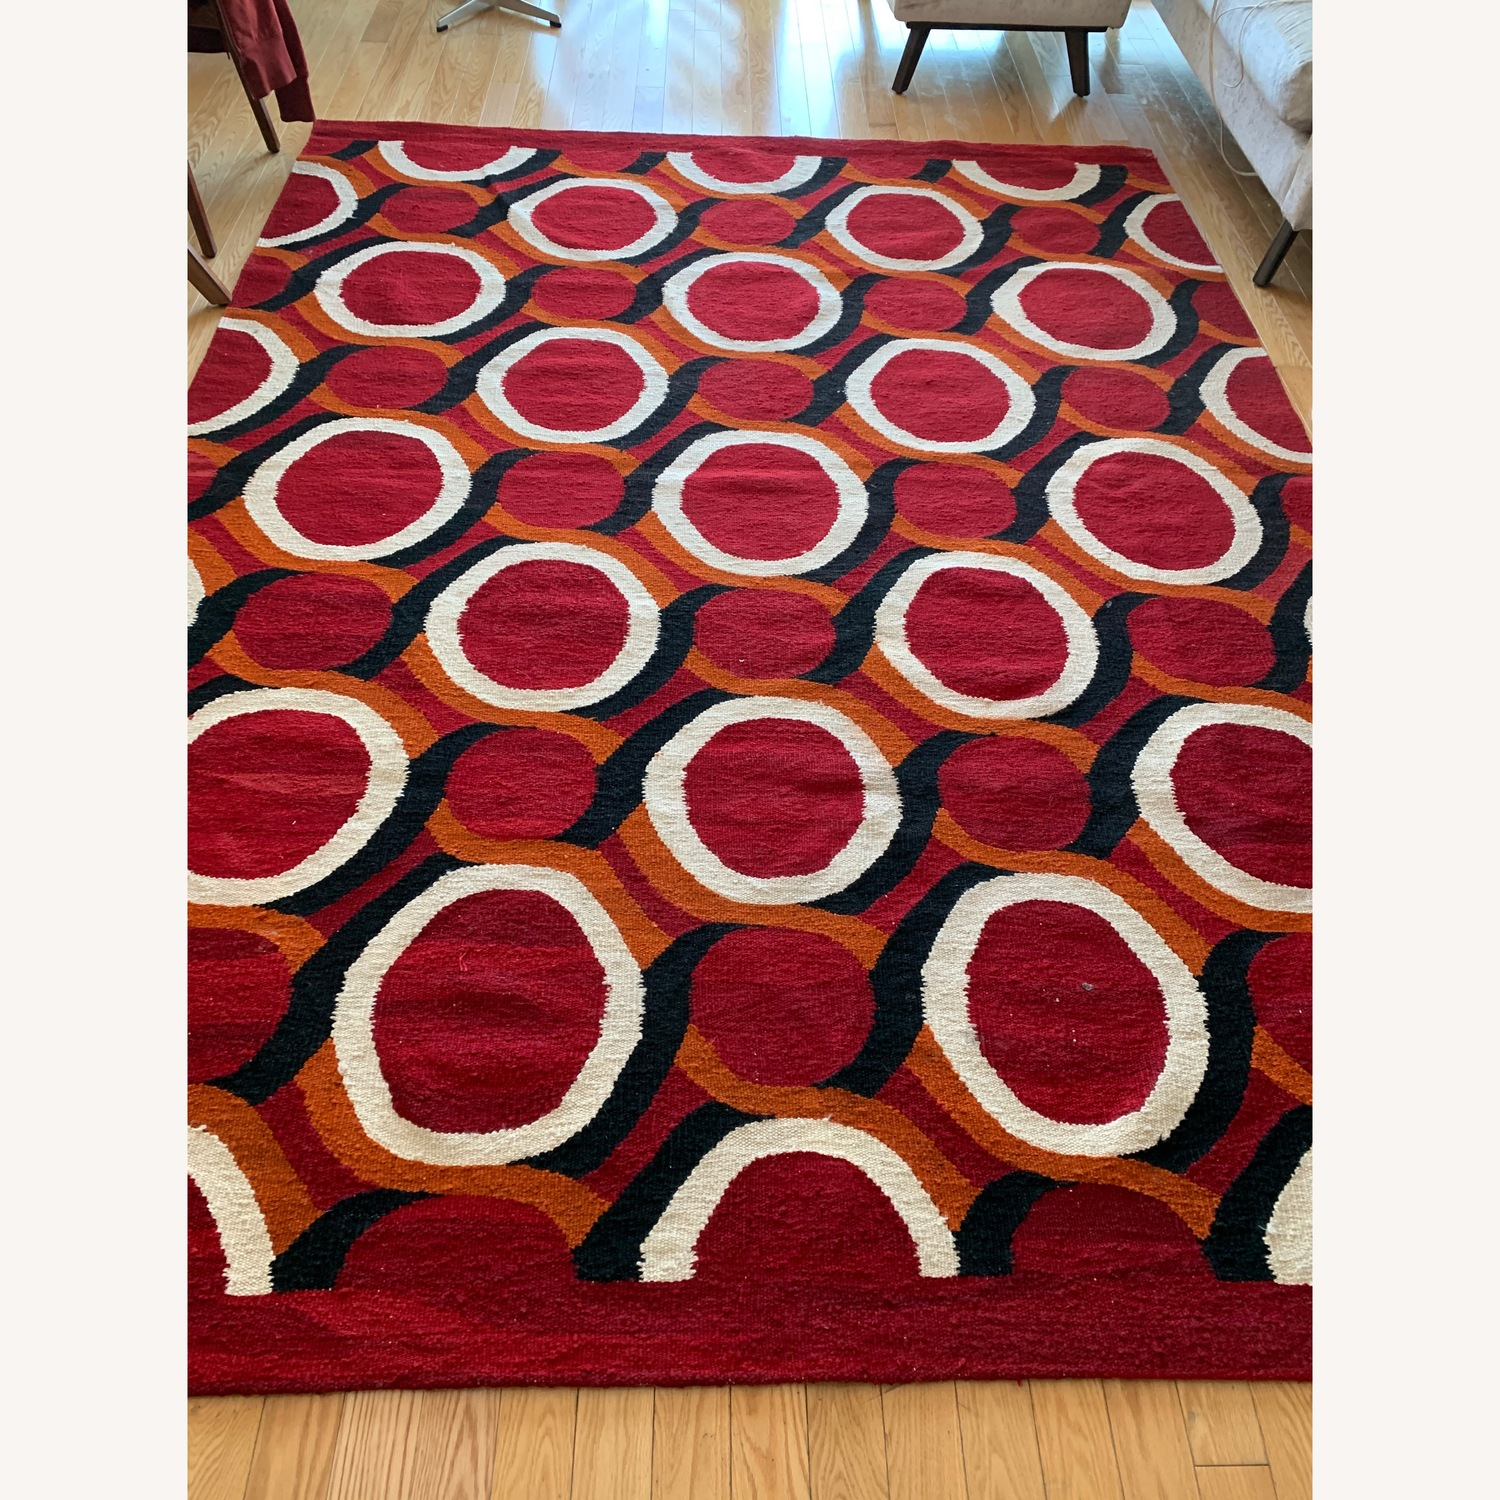 Turkish handwoven red wool rug